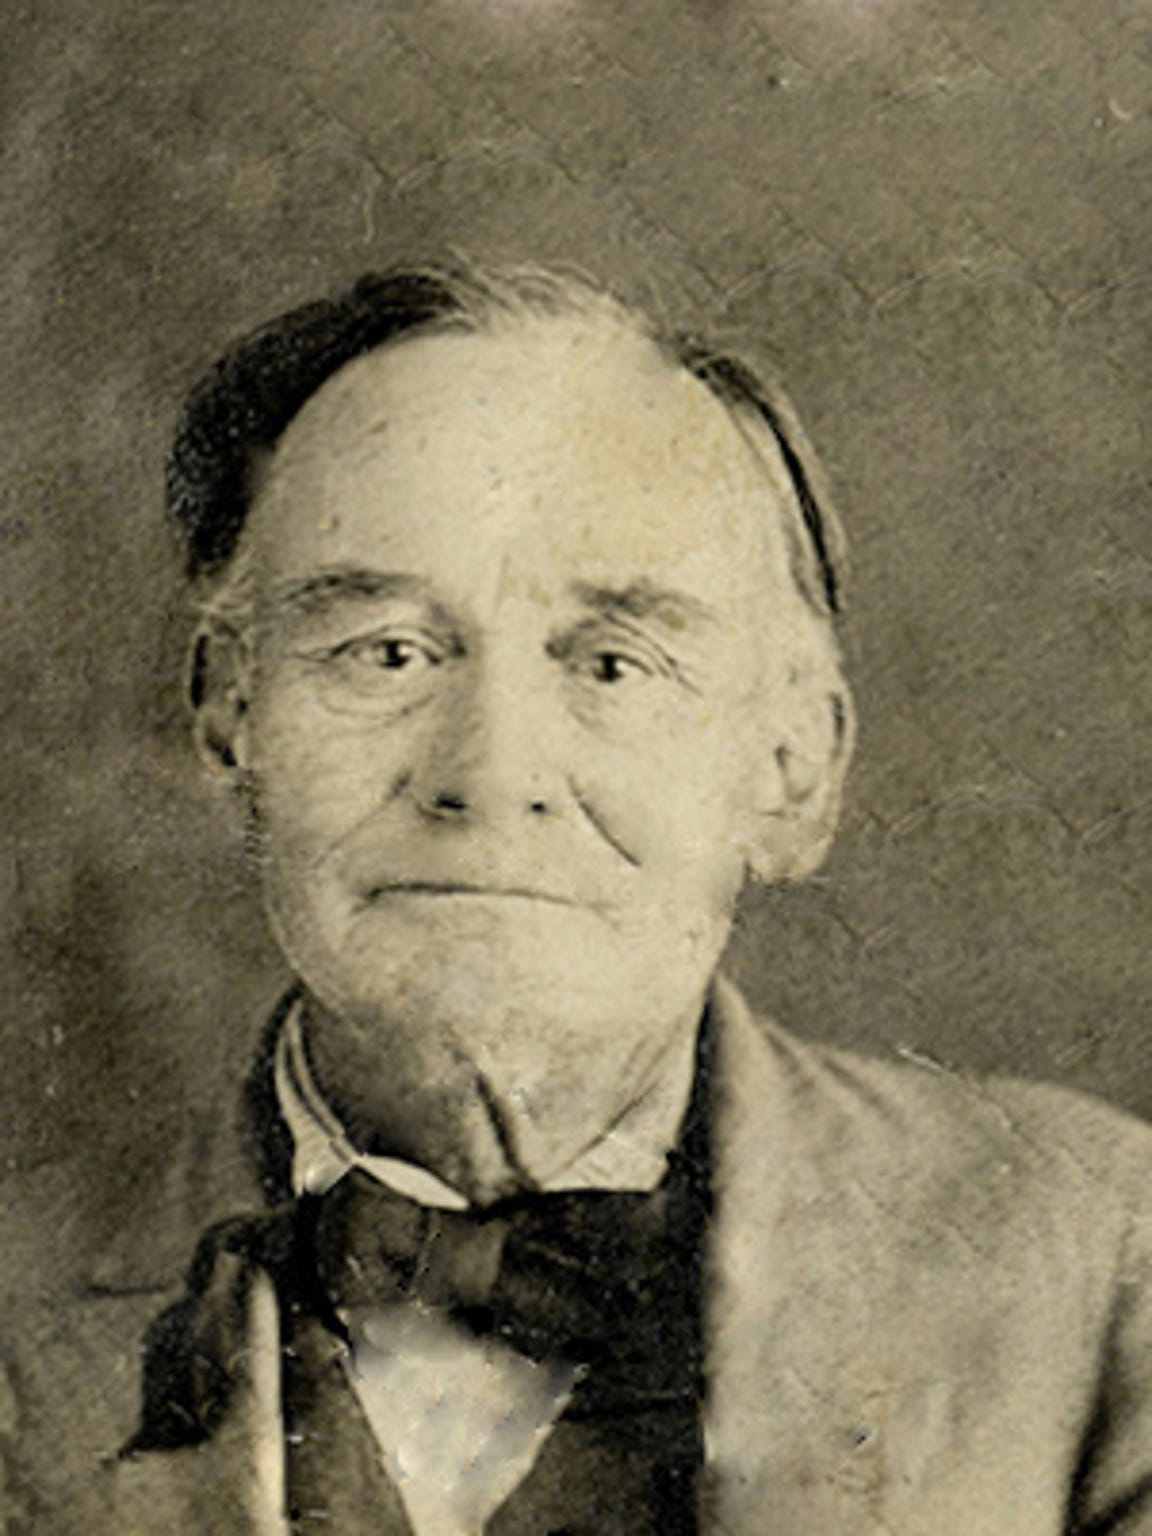 Harry Warren, a schoolmaster who lived near Porvenir, Texas, wrote an account of the 1918 massacre. Because of him, the massacre is known, said Arlinda Valencia, a descendant of one of the victims. This is a 1919 passport photo of Warren.